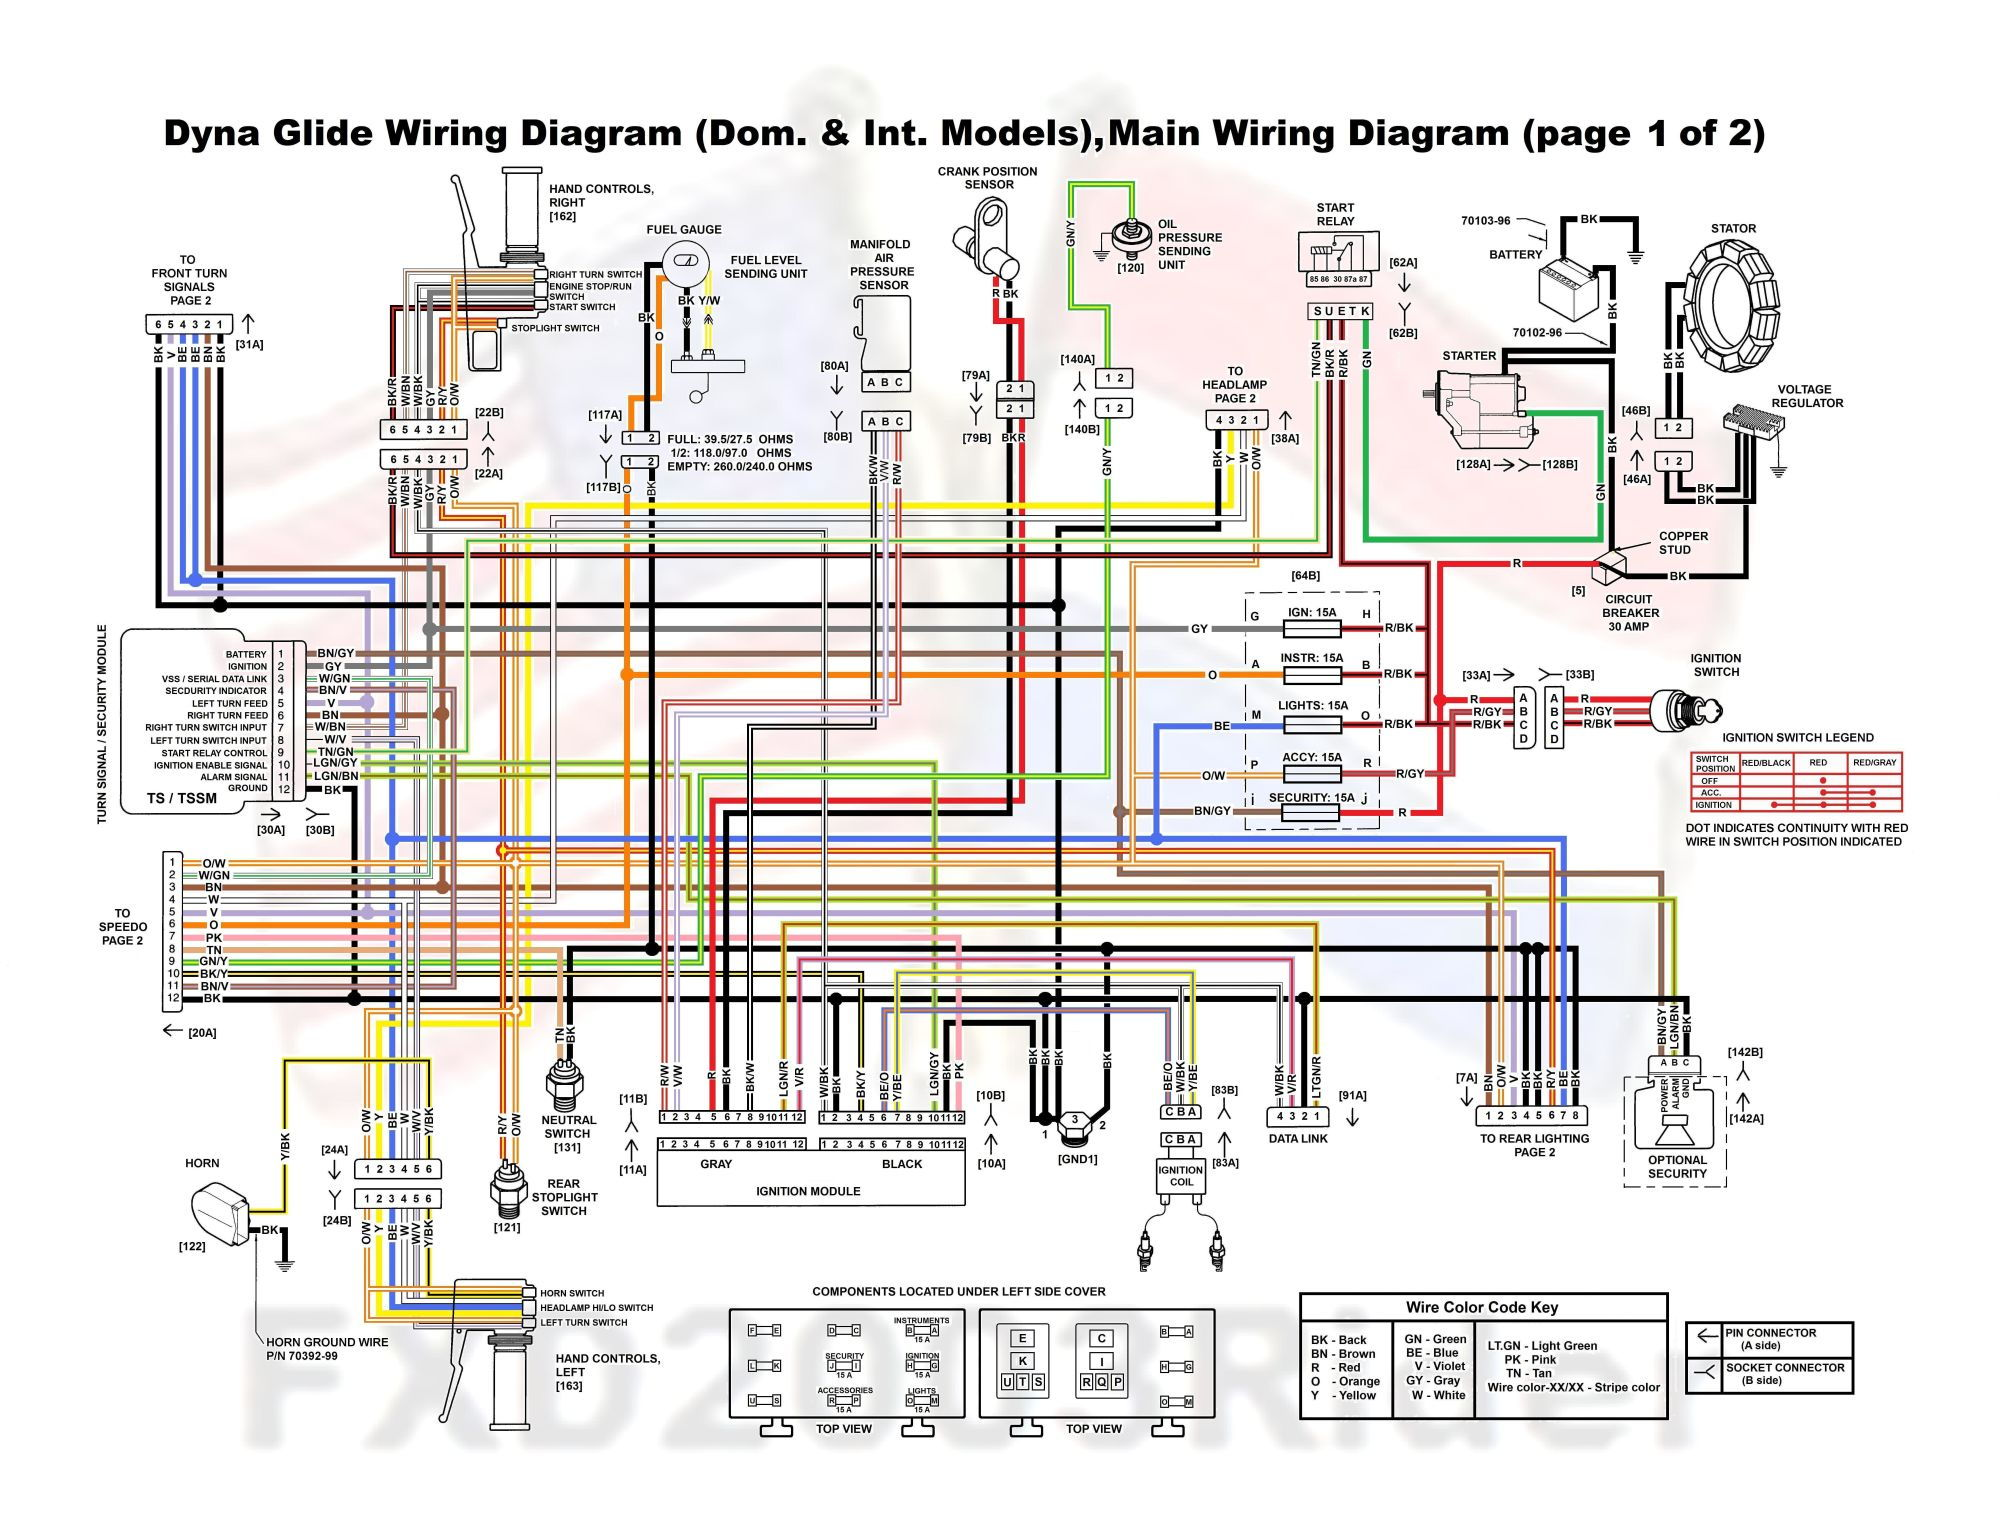 1998 Dyna Wiring Diagram - Wiring Diagrams List Harley Davidson Simple Wiring Diagrams on